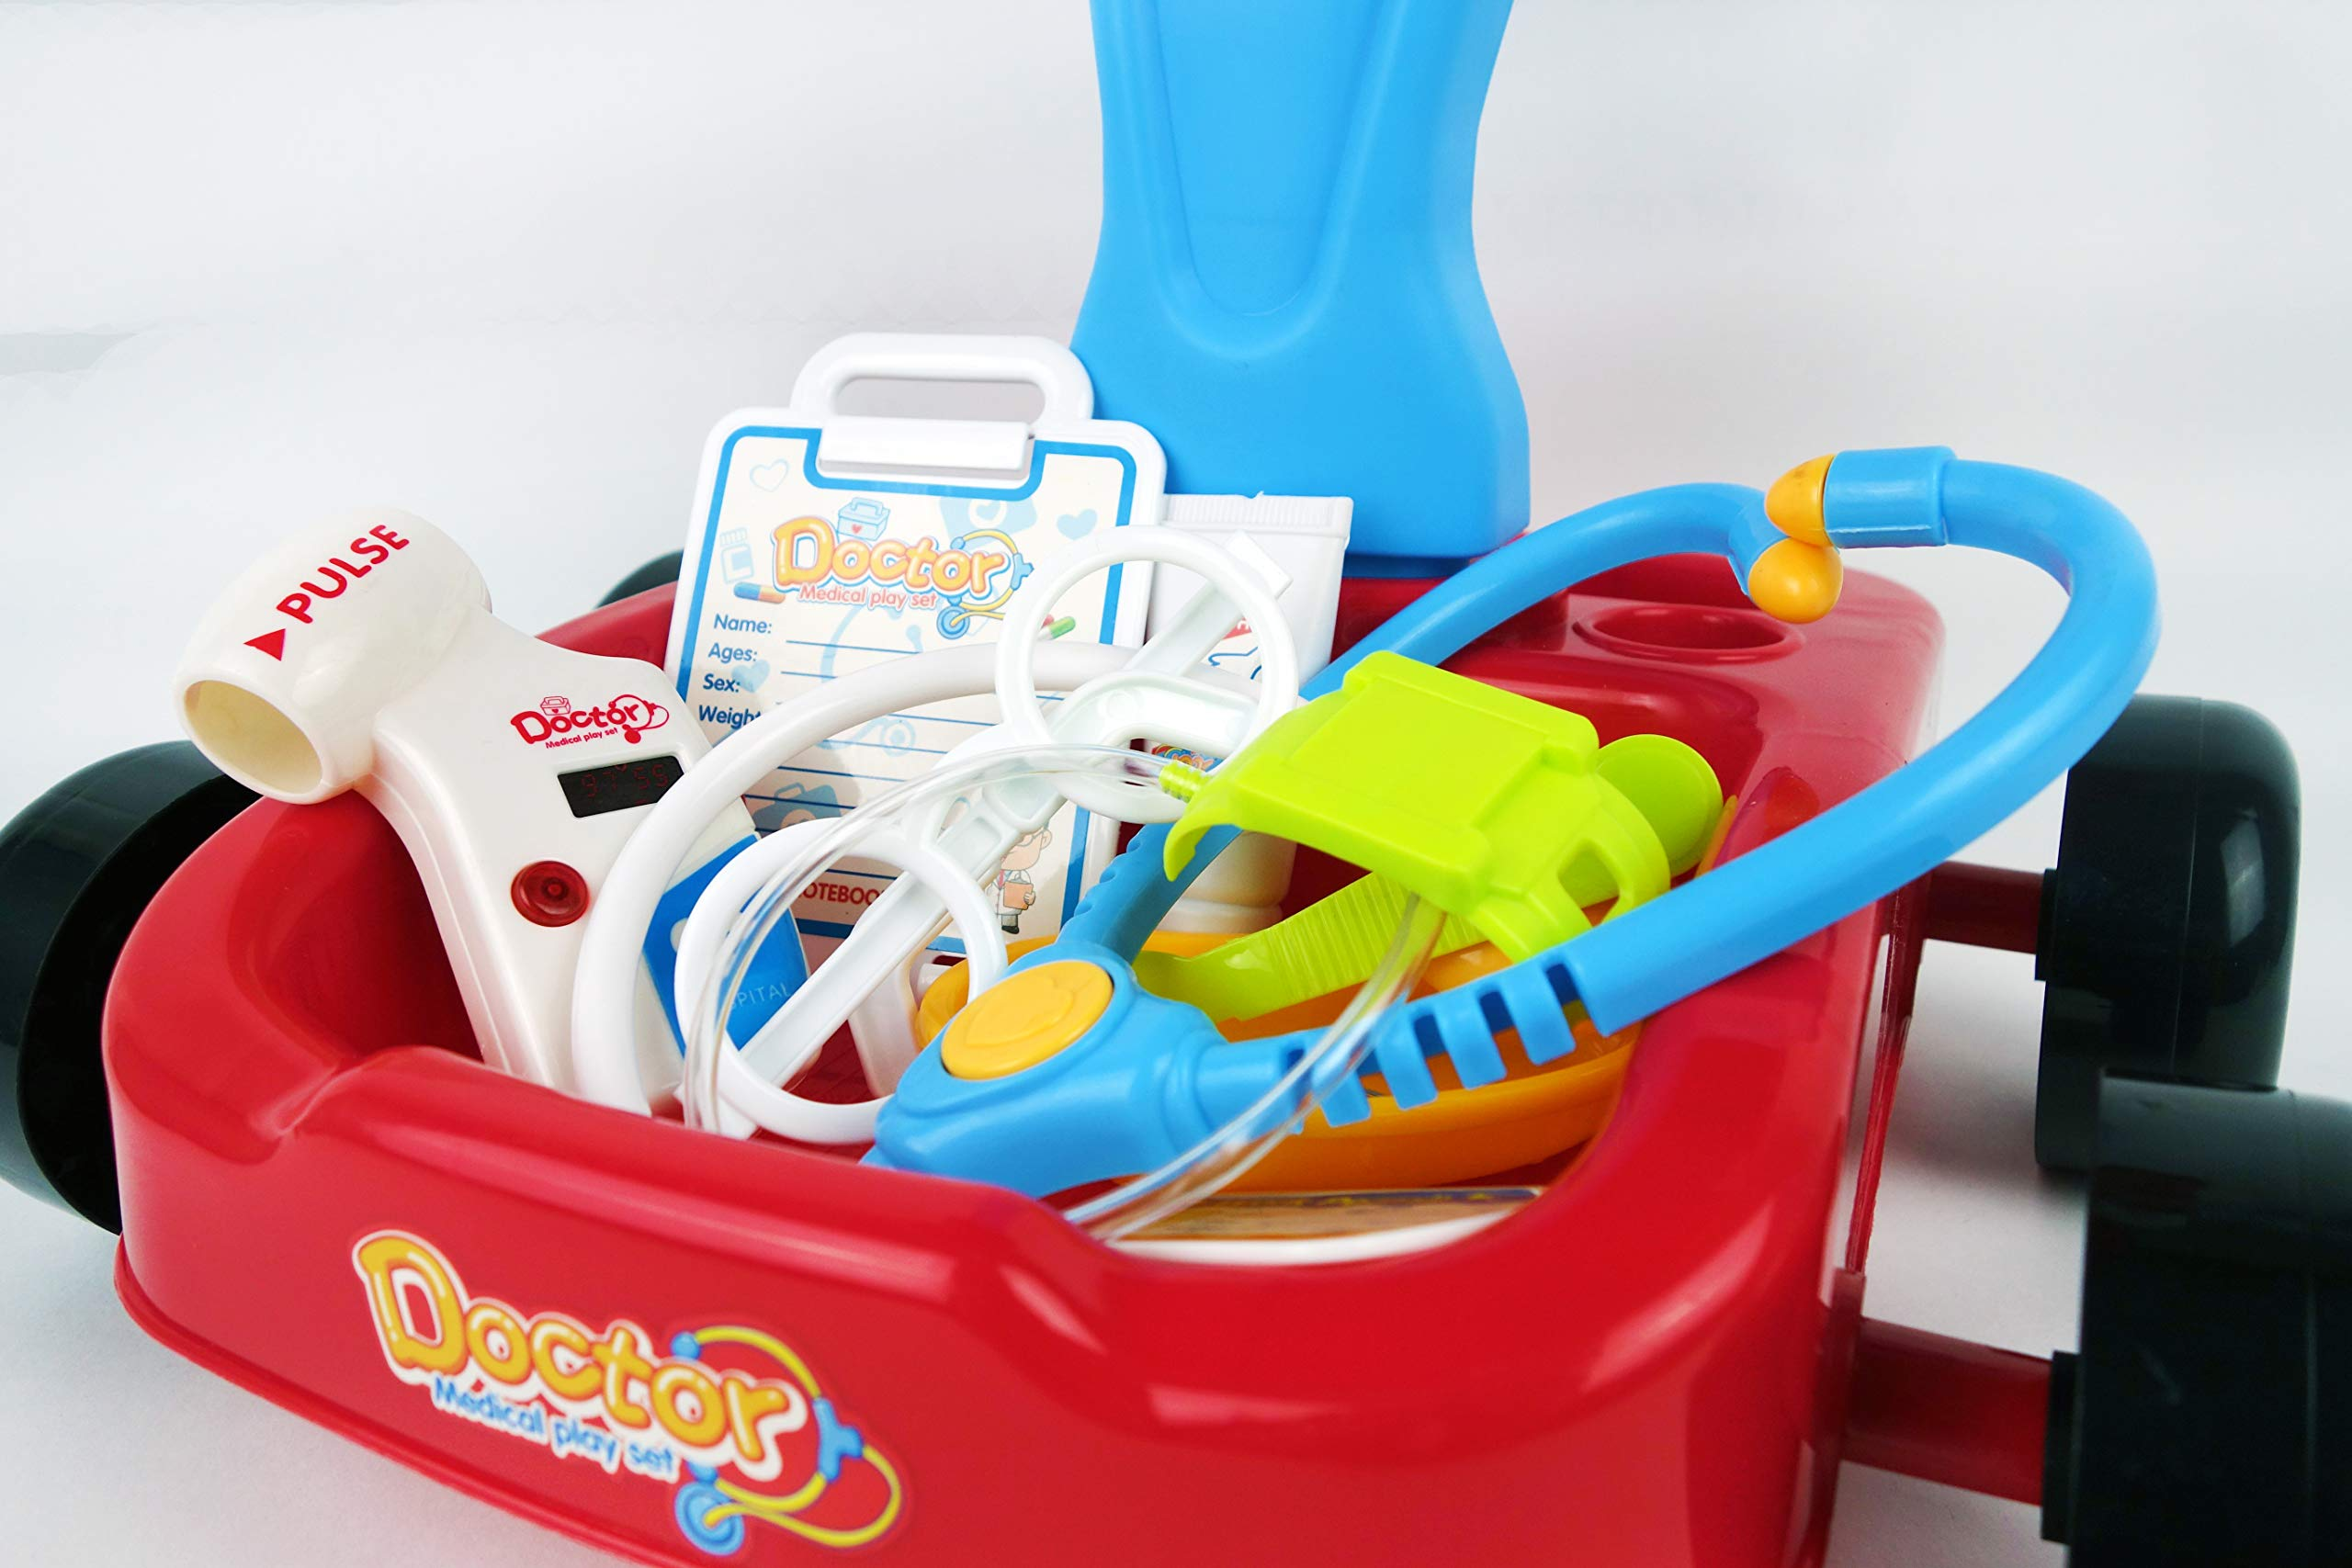 NBD Corp Kids Toy Portable Doctor Set, 17 Piece Set with Play Screen and Play Doctor Instruments by NBD Corp (Image #5)